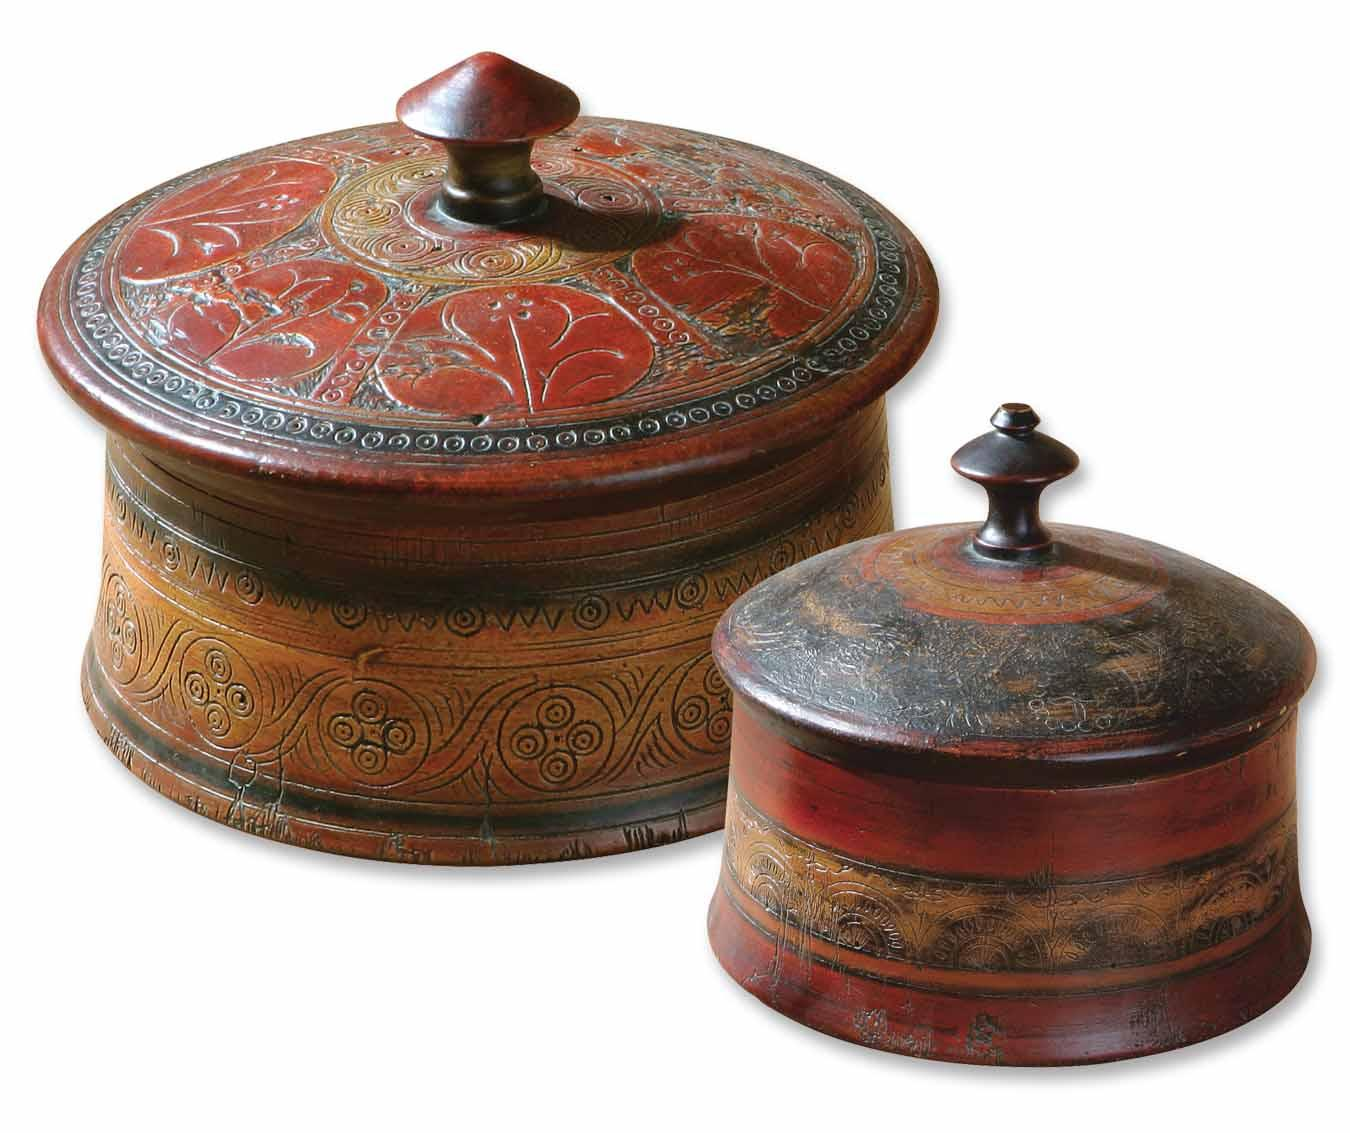 Uttermost Accessories Sherpa Boxes Set of 2 - Item Number: 20800